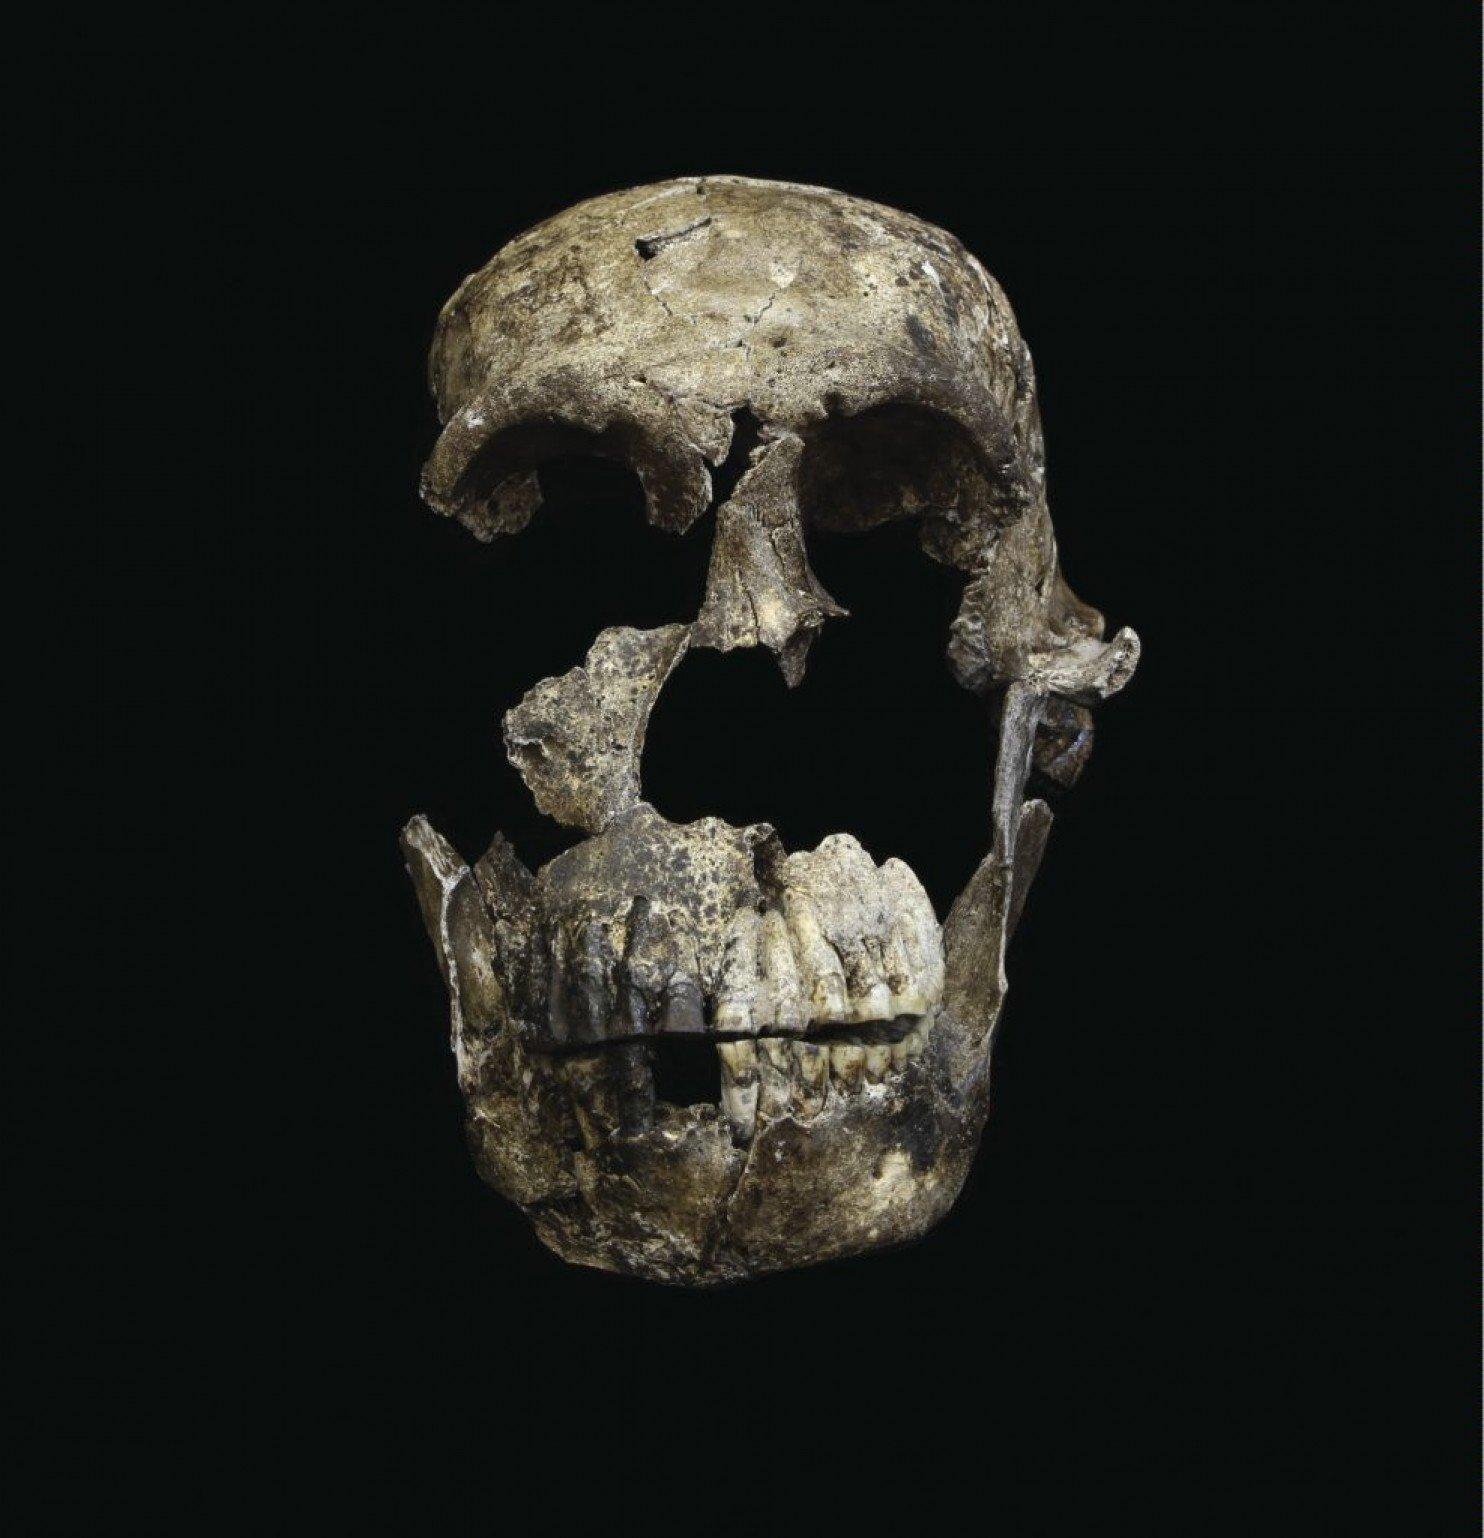 """Neo"" skull of Homo naledi from the Lesedi Chamber. (John Hawks/University of the Witwatersrand)"